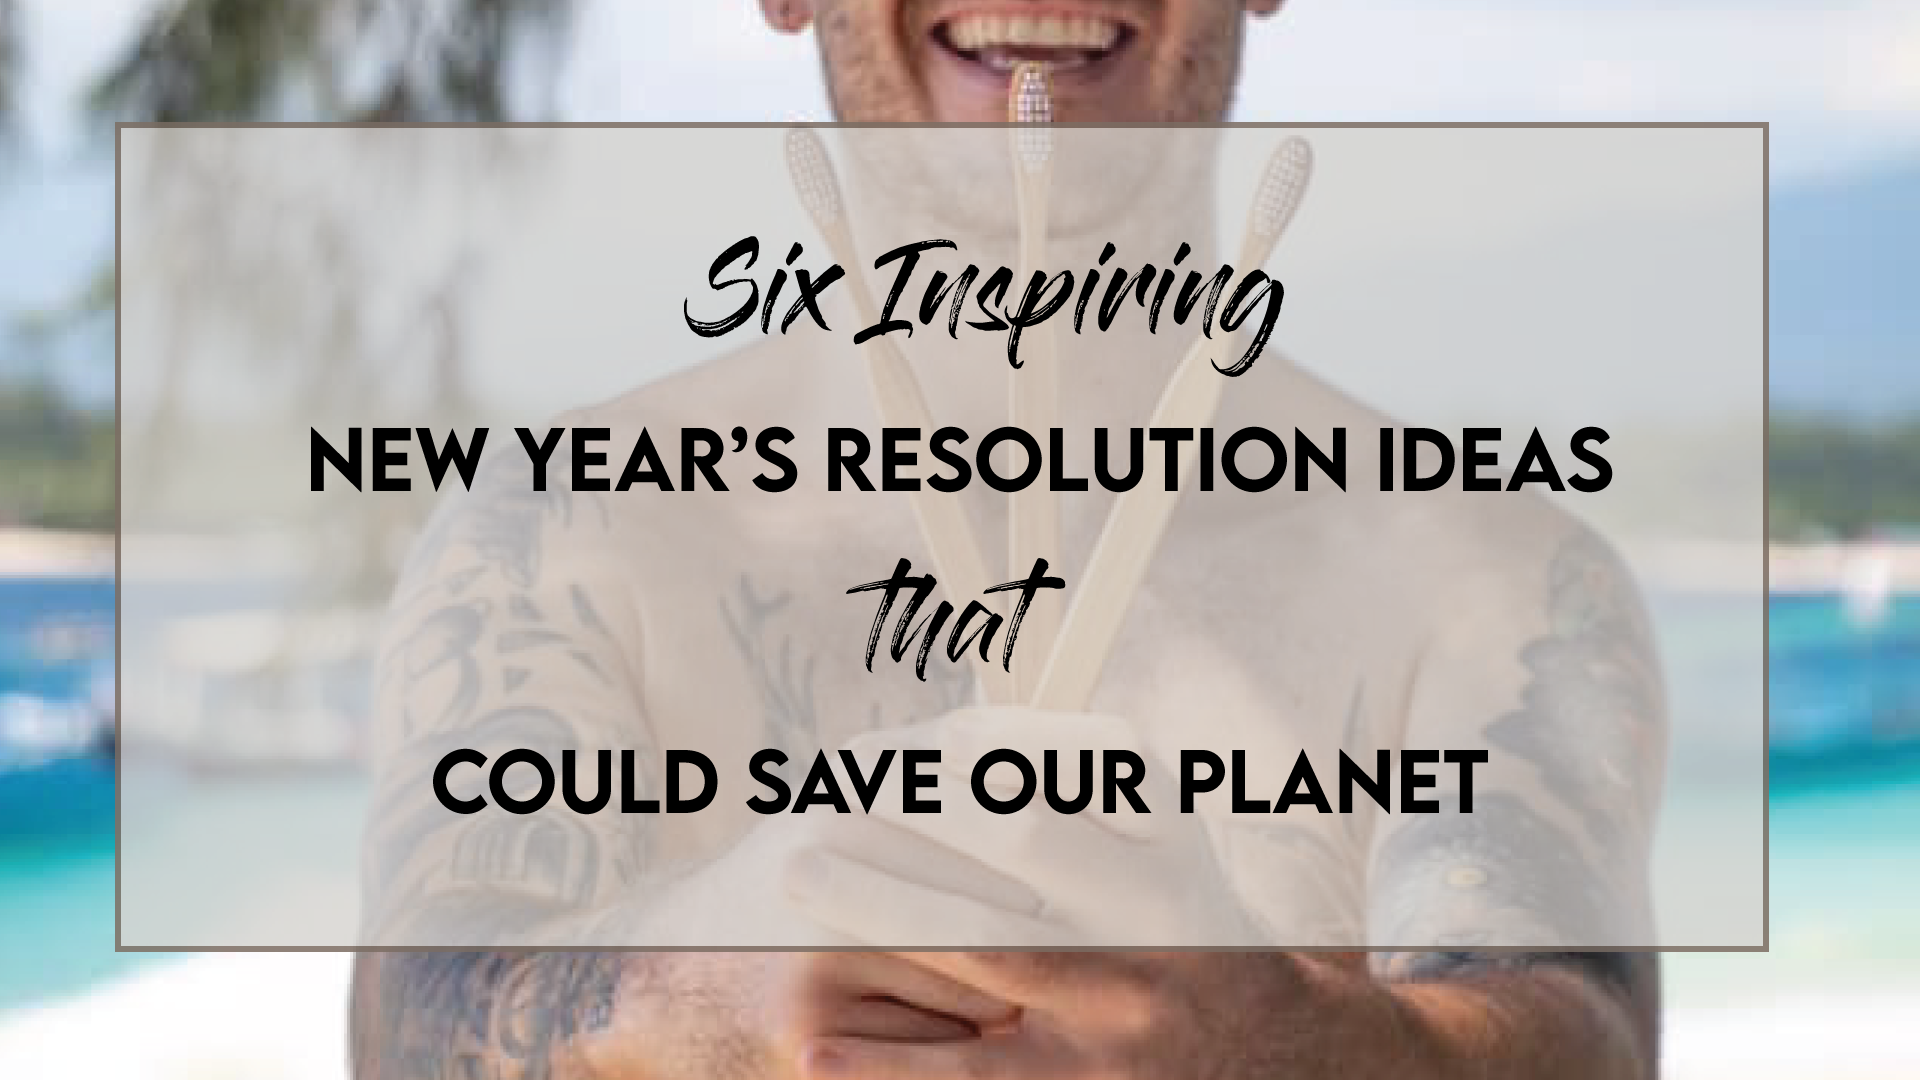 Six inspiring new year's resolution ideas for 2021